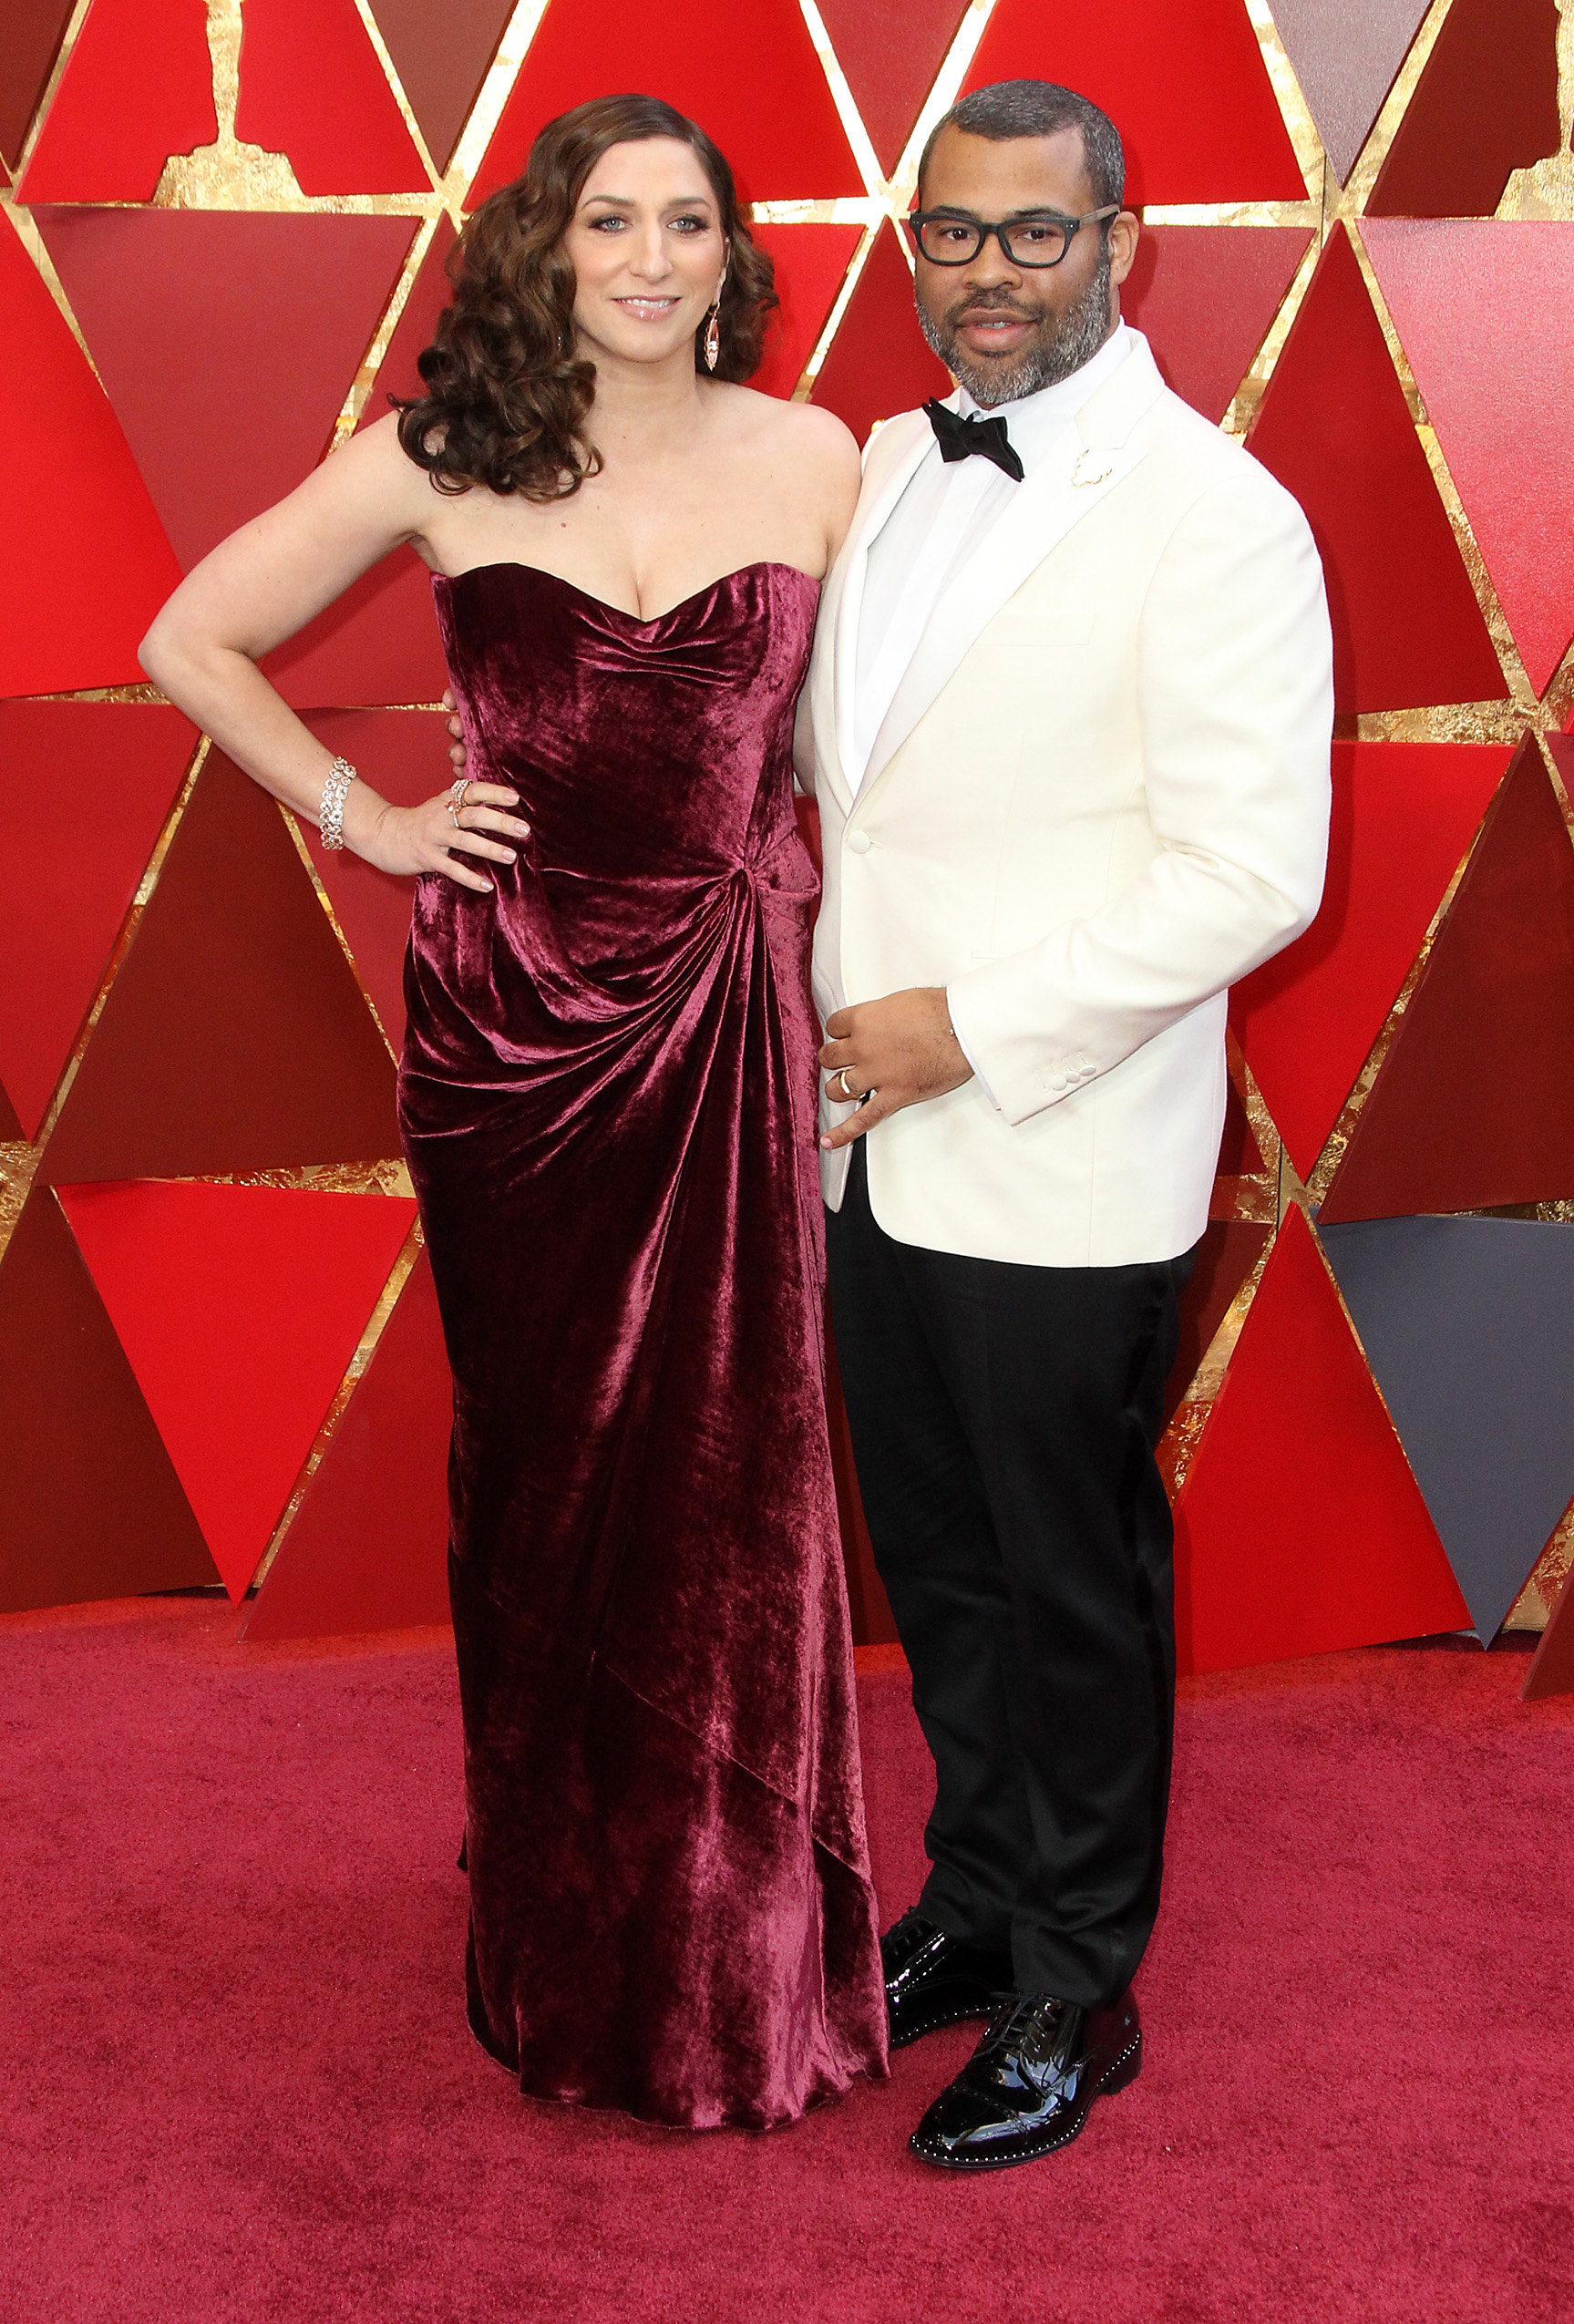 Jordan Peele and his film &quot;Get Out&quot; made history at the Oscars as he became the first African American to win Best Original Screenplay. He looked the part of a winner in his Calvin Klein 205W39NYC tux with a custom Jason of Beverly Hills lapel pin and a Montblanc watch.(Image: Adriana M. Barraza/WENN.com)<p></p>